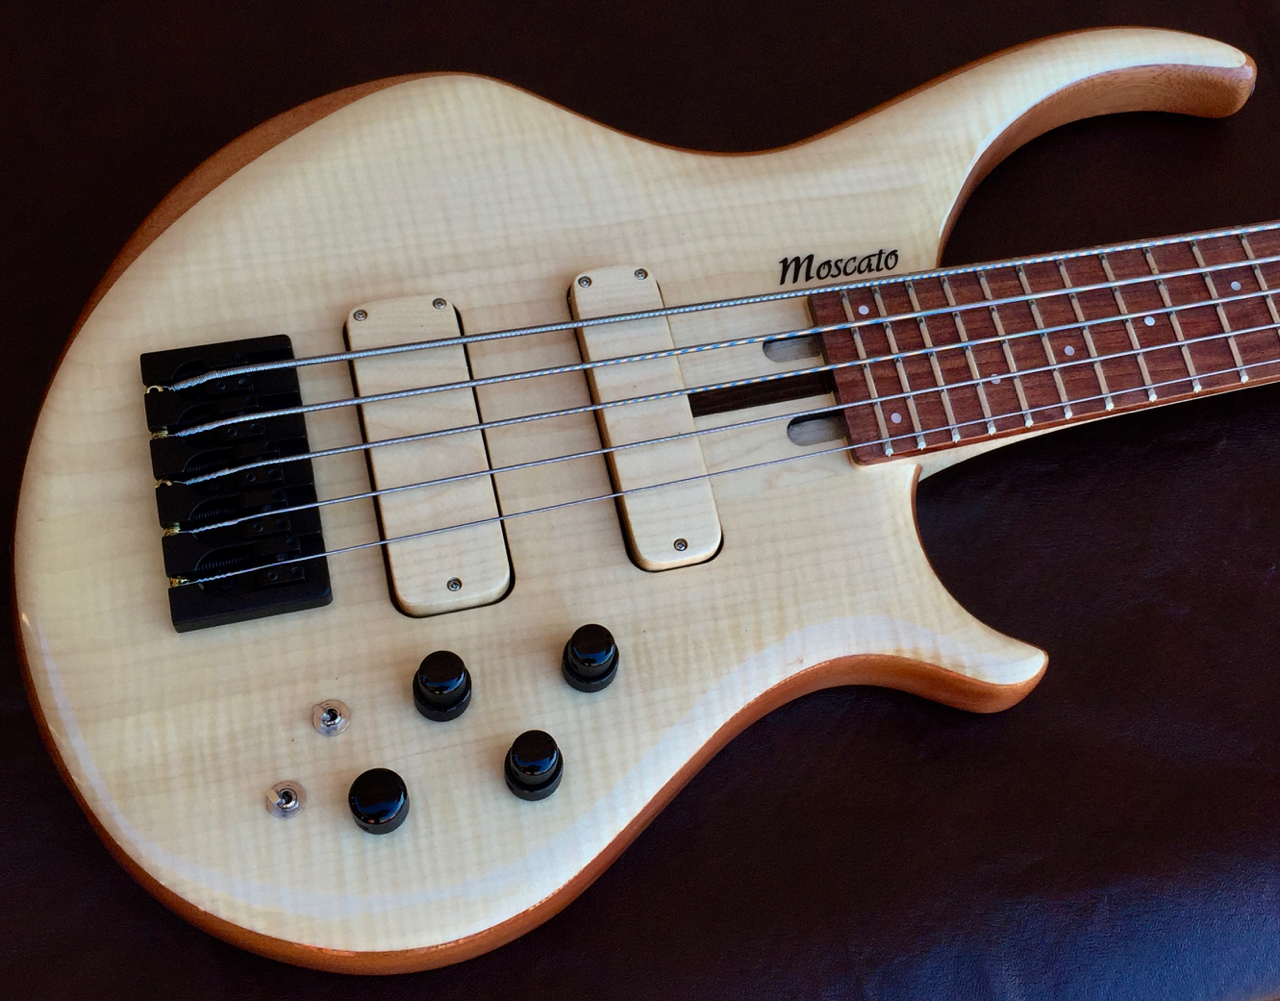 moscato basses flona 5 string electric bass guitar john east preamp luthiers access group. Black Bedroom Furniture Sets. Home Design Ideas